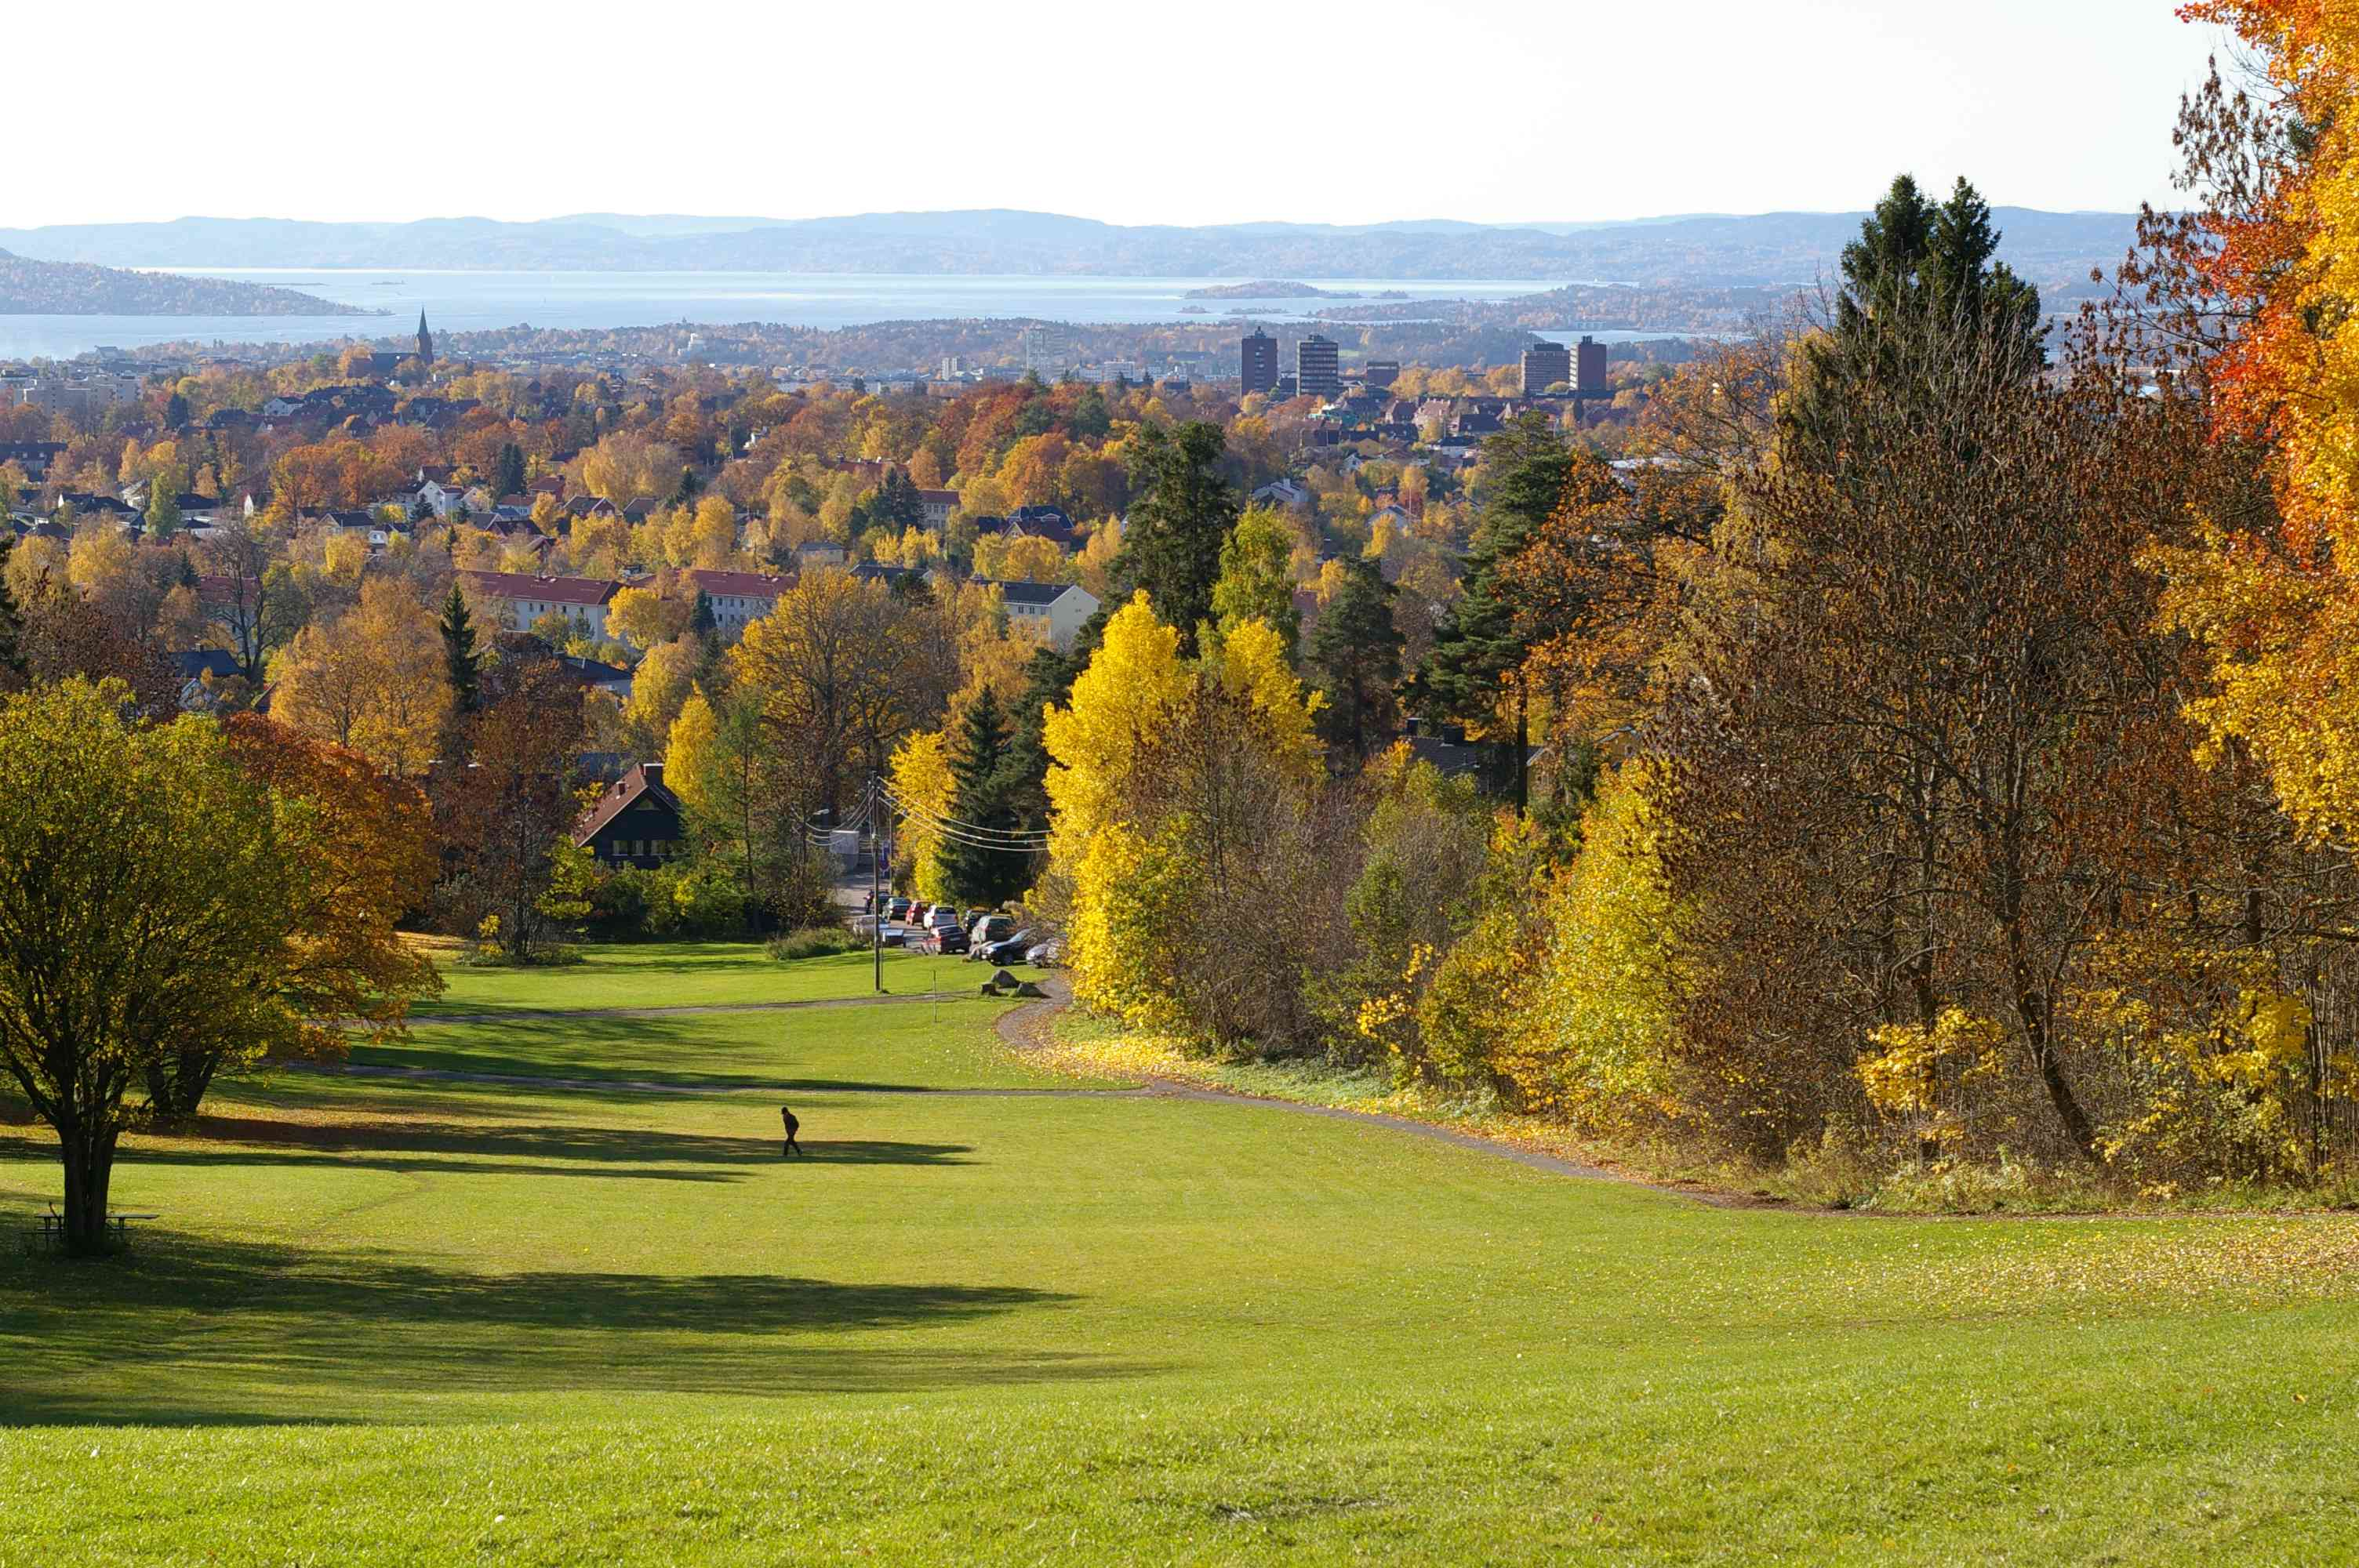 a wide, green lawn with trees in shades of orange, green, and pale green with a waterway in the distance in Oslo